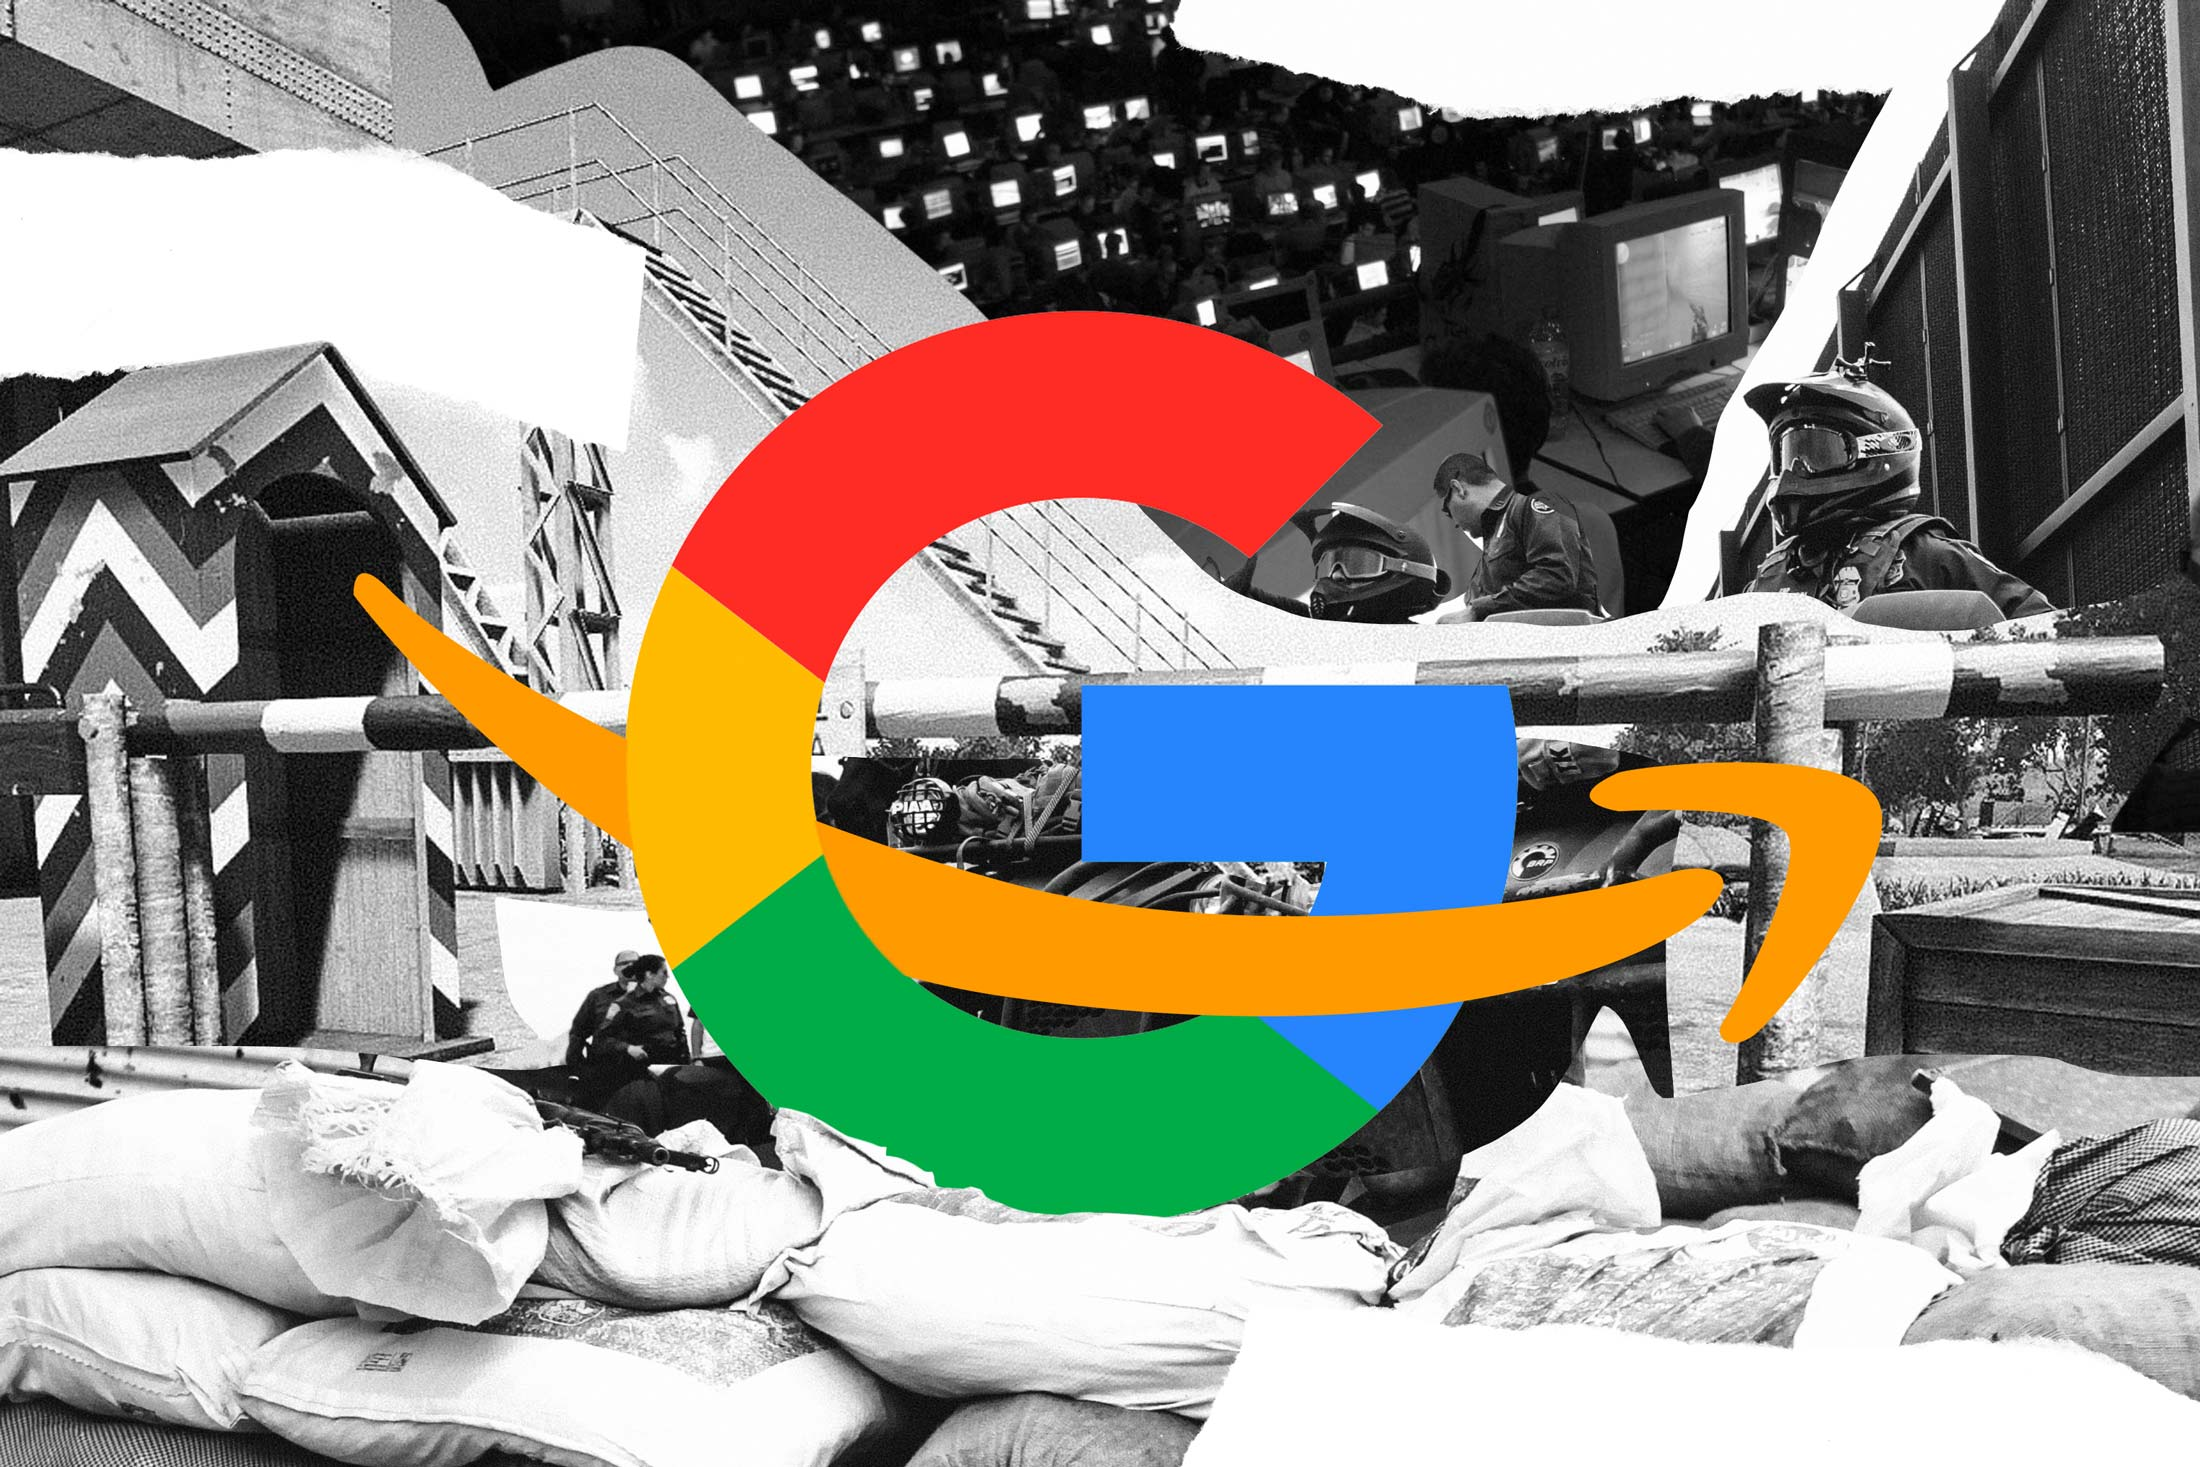 Google and Amazon logos intertwined at a photomontage of a barricade blocking access to computer terminals.